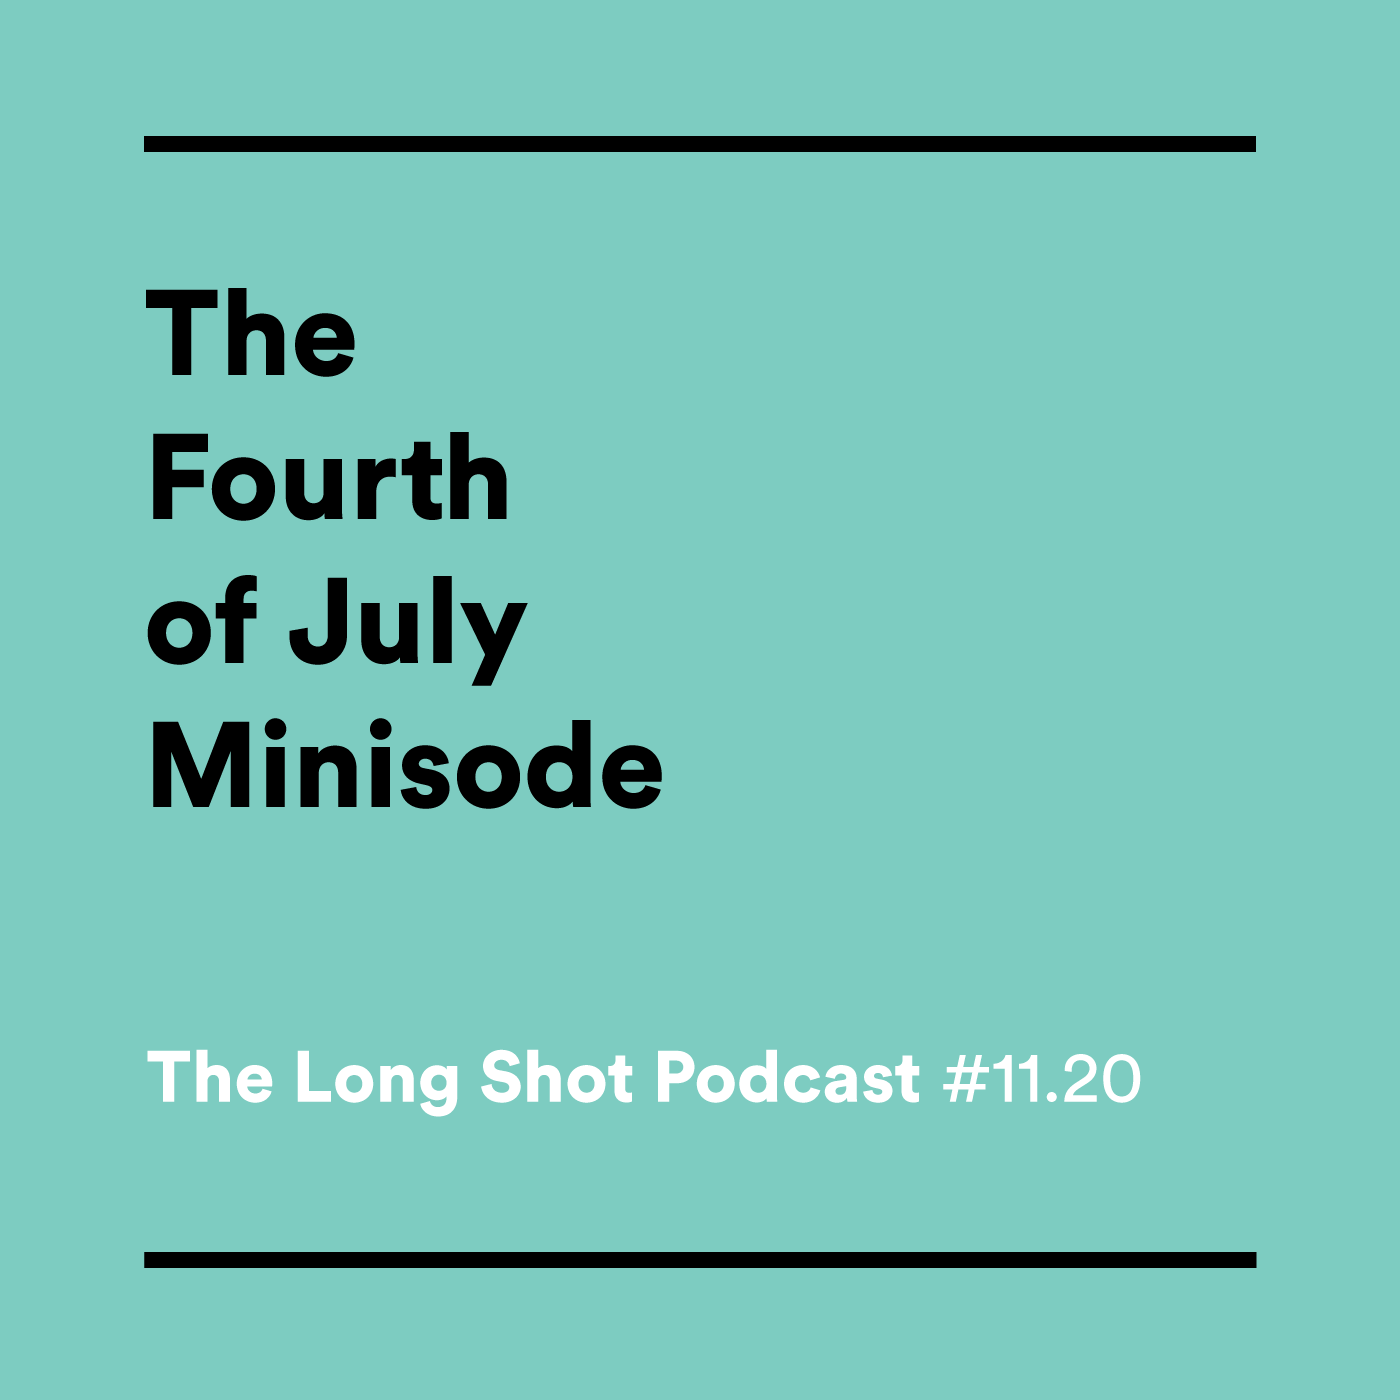 #11.20 The Fourth of July Minisode